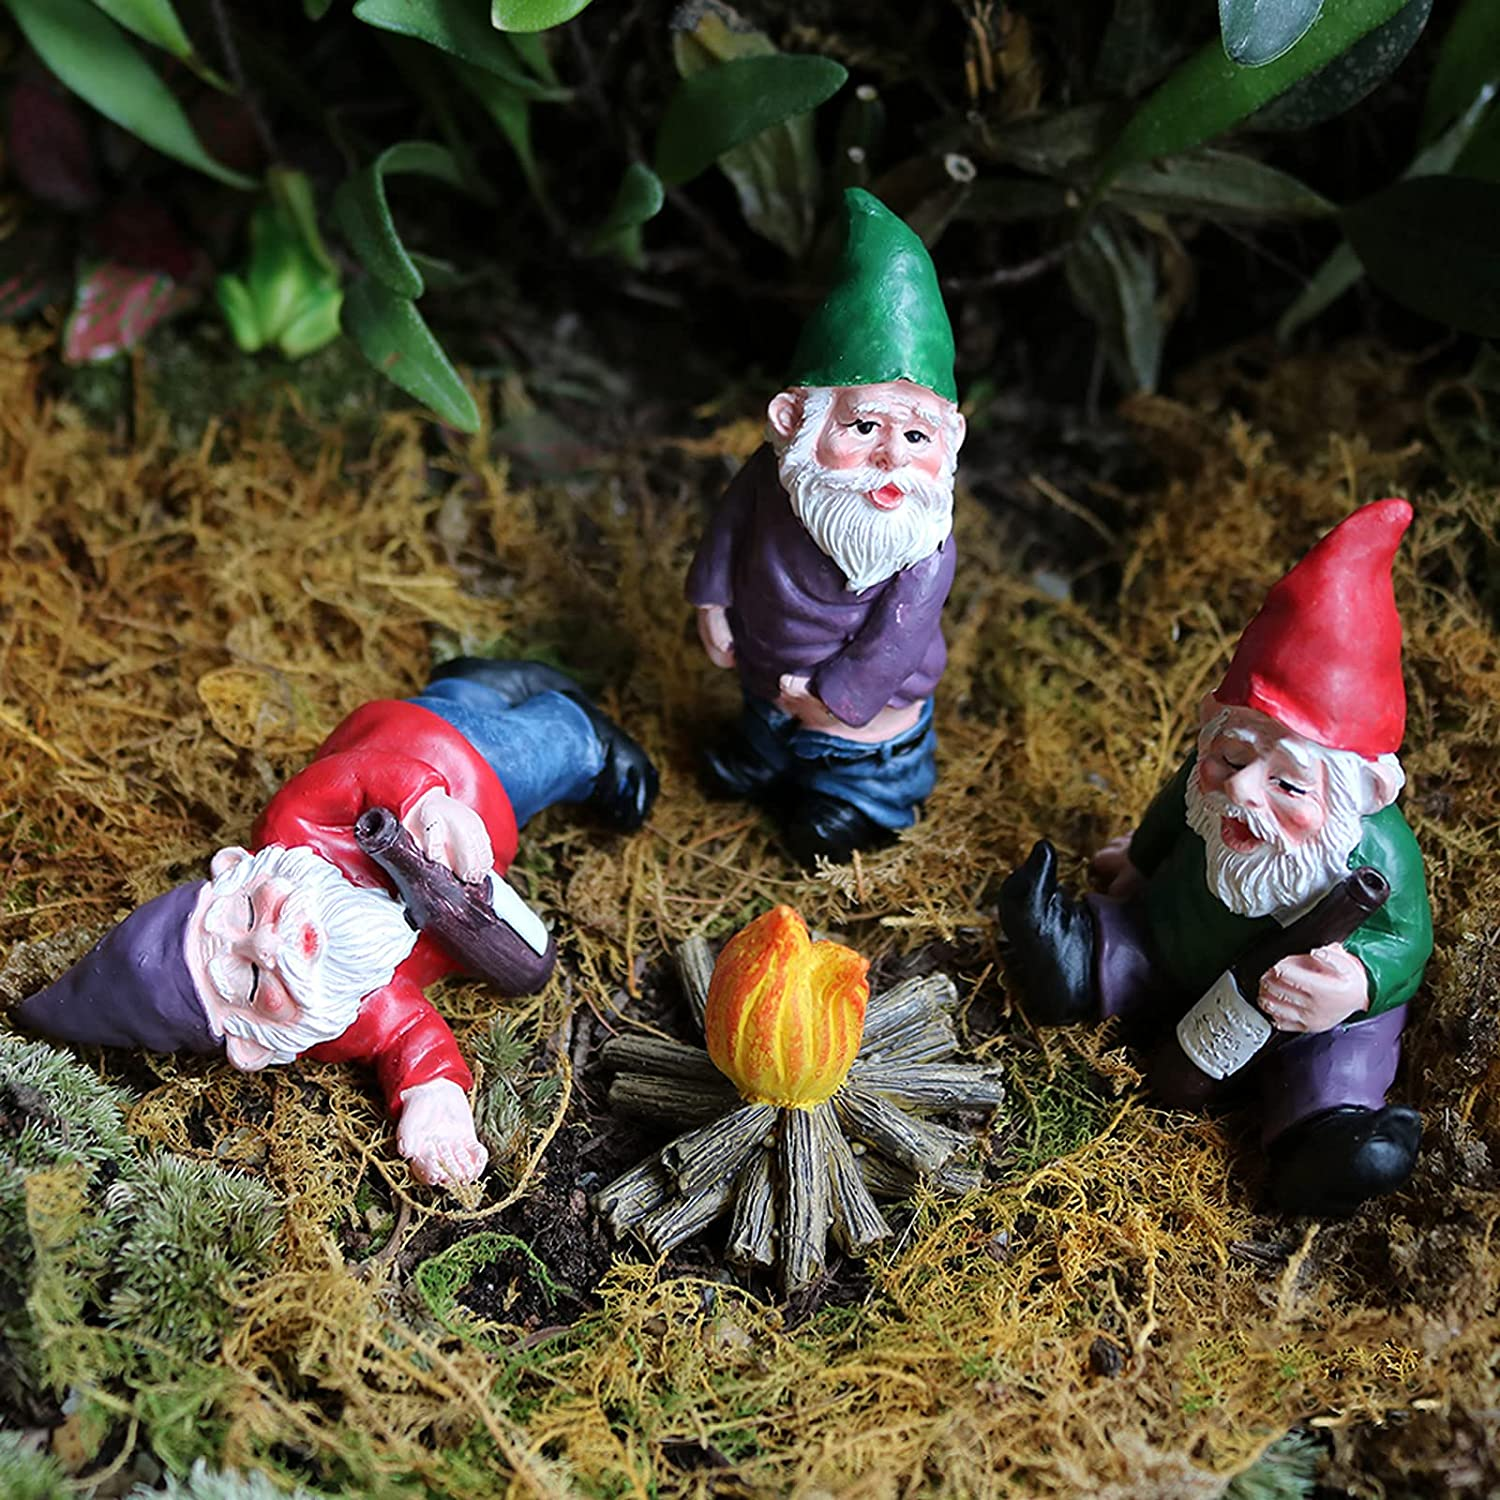 Miniature Gardening Gnomes, Drunk Dwarf Gnome for Fairy Garden, Garden Gnomes Statues Funny Accessories Collectible Figurines Indoor or Outdoor Decorations for Lawn Ornaments(4Pcs)